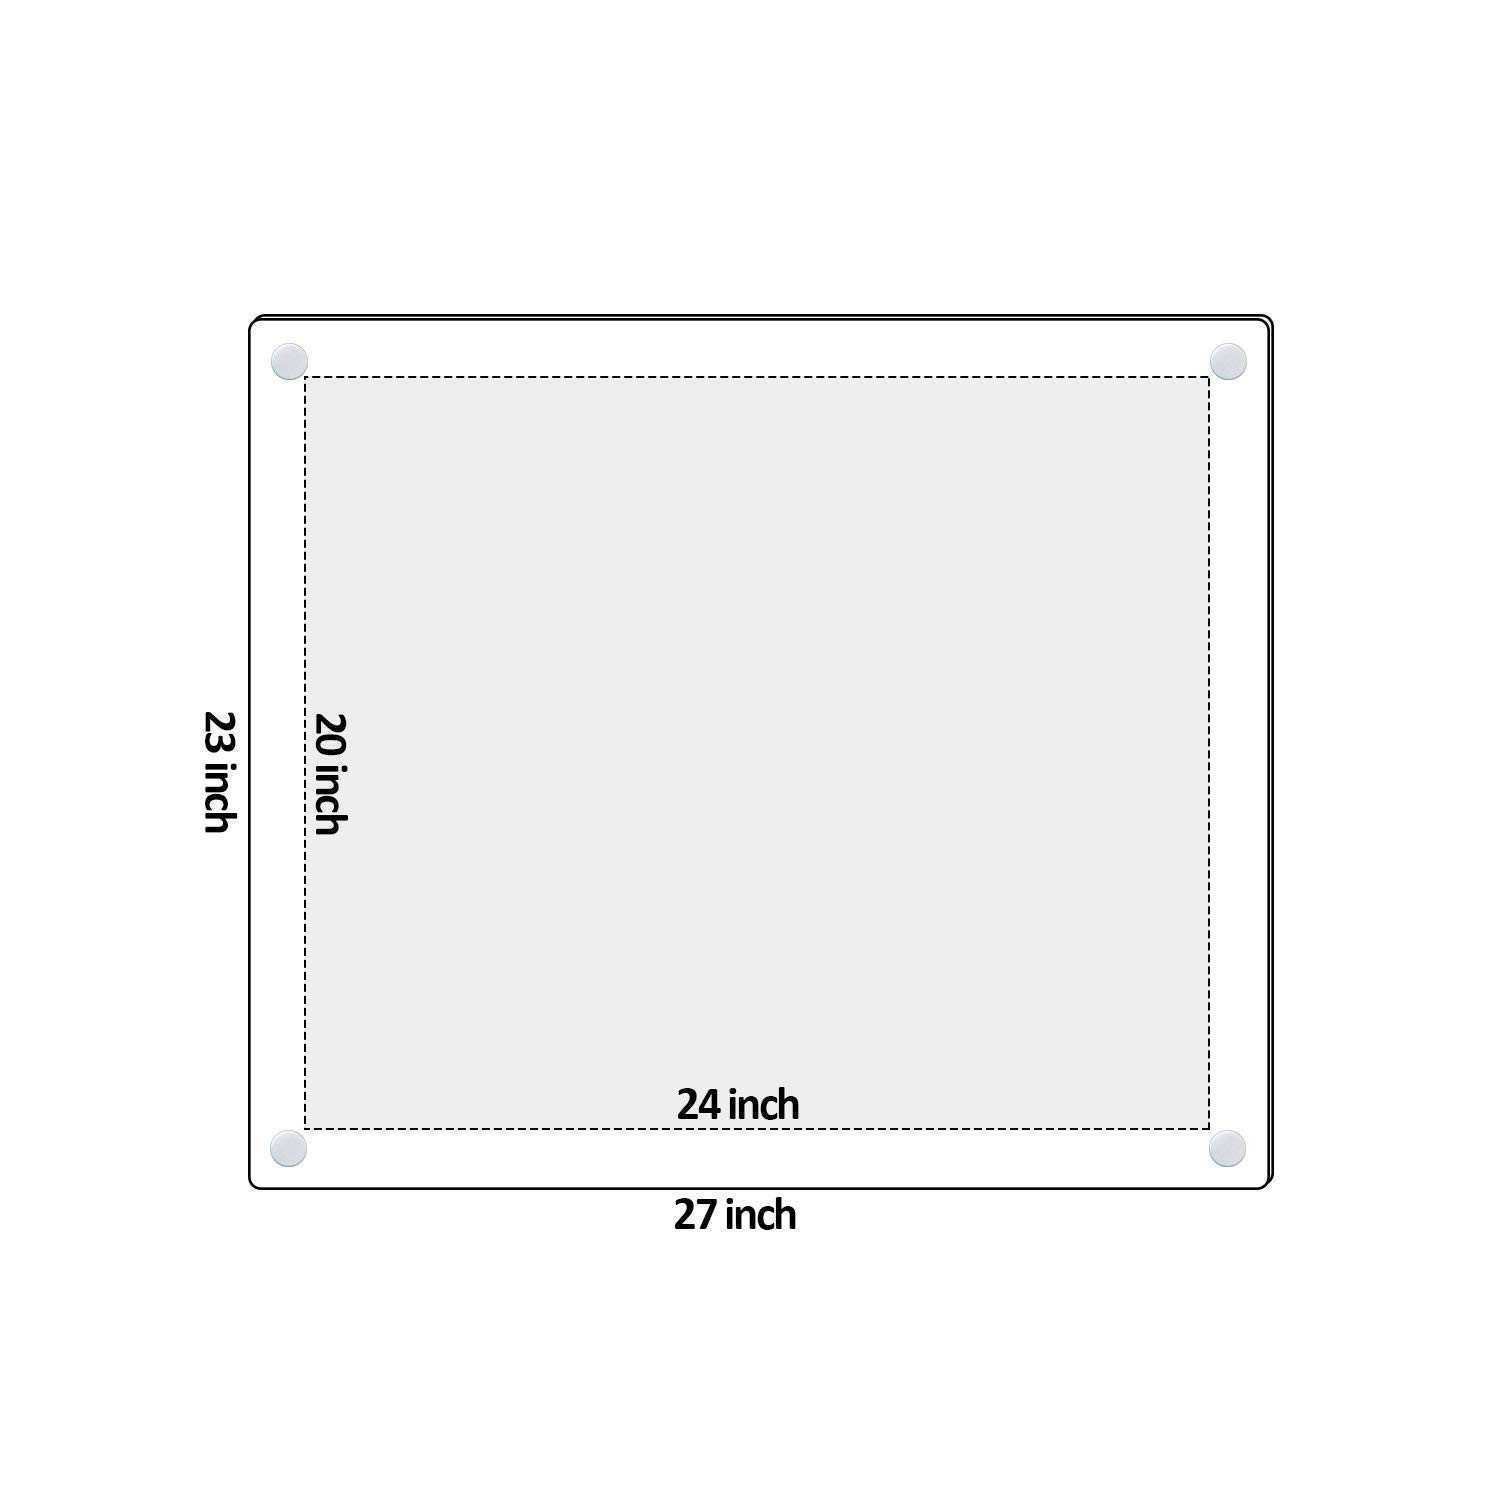 Frameless Wall Mounted Acrylic Picture Frames Awesome Amazon Niubee ...